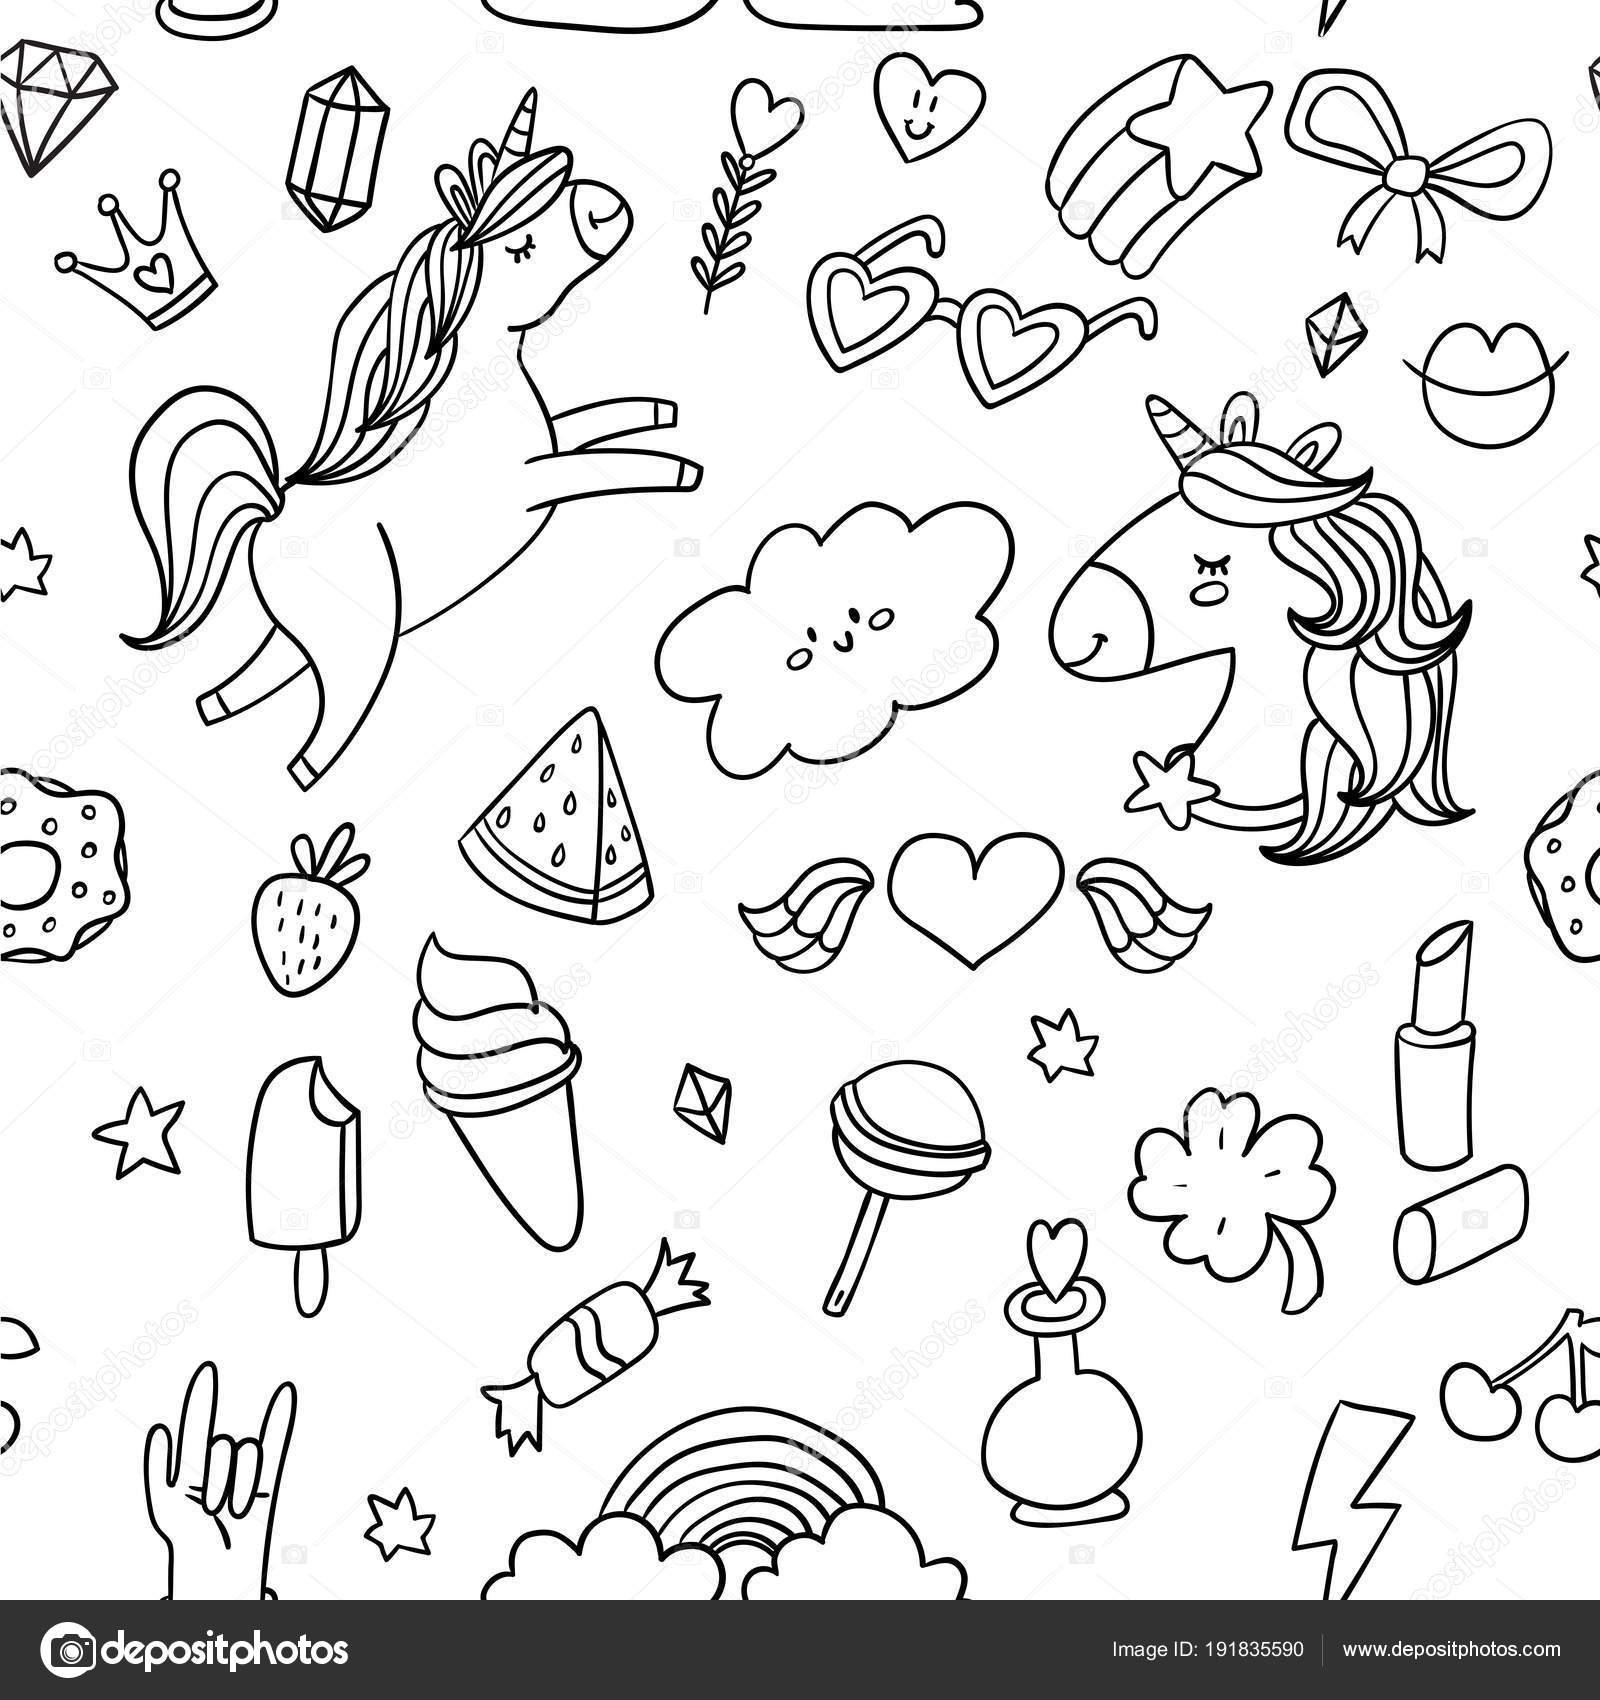 Cute Sketch Doodle Style Stickers Set Vector Illustration ...